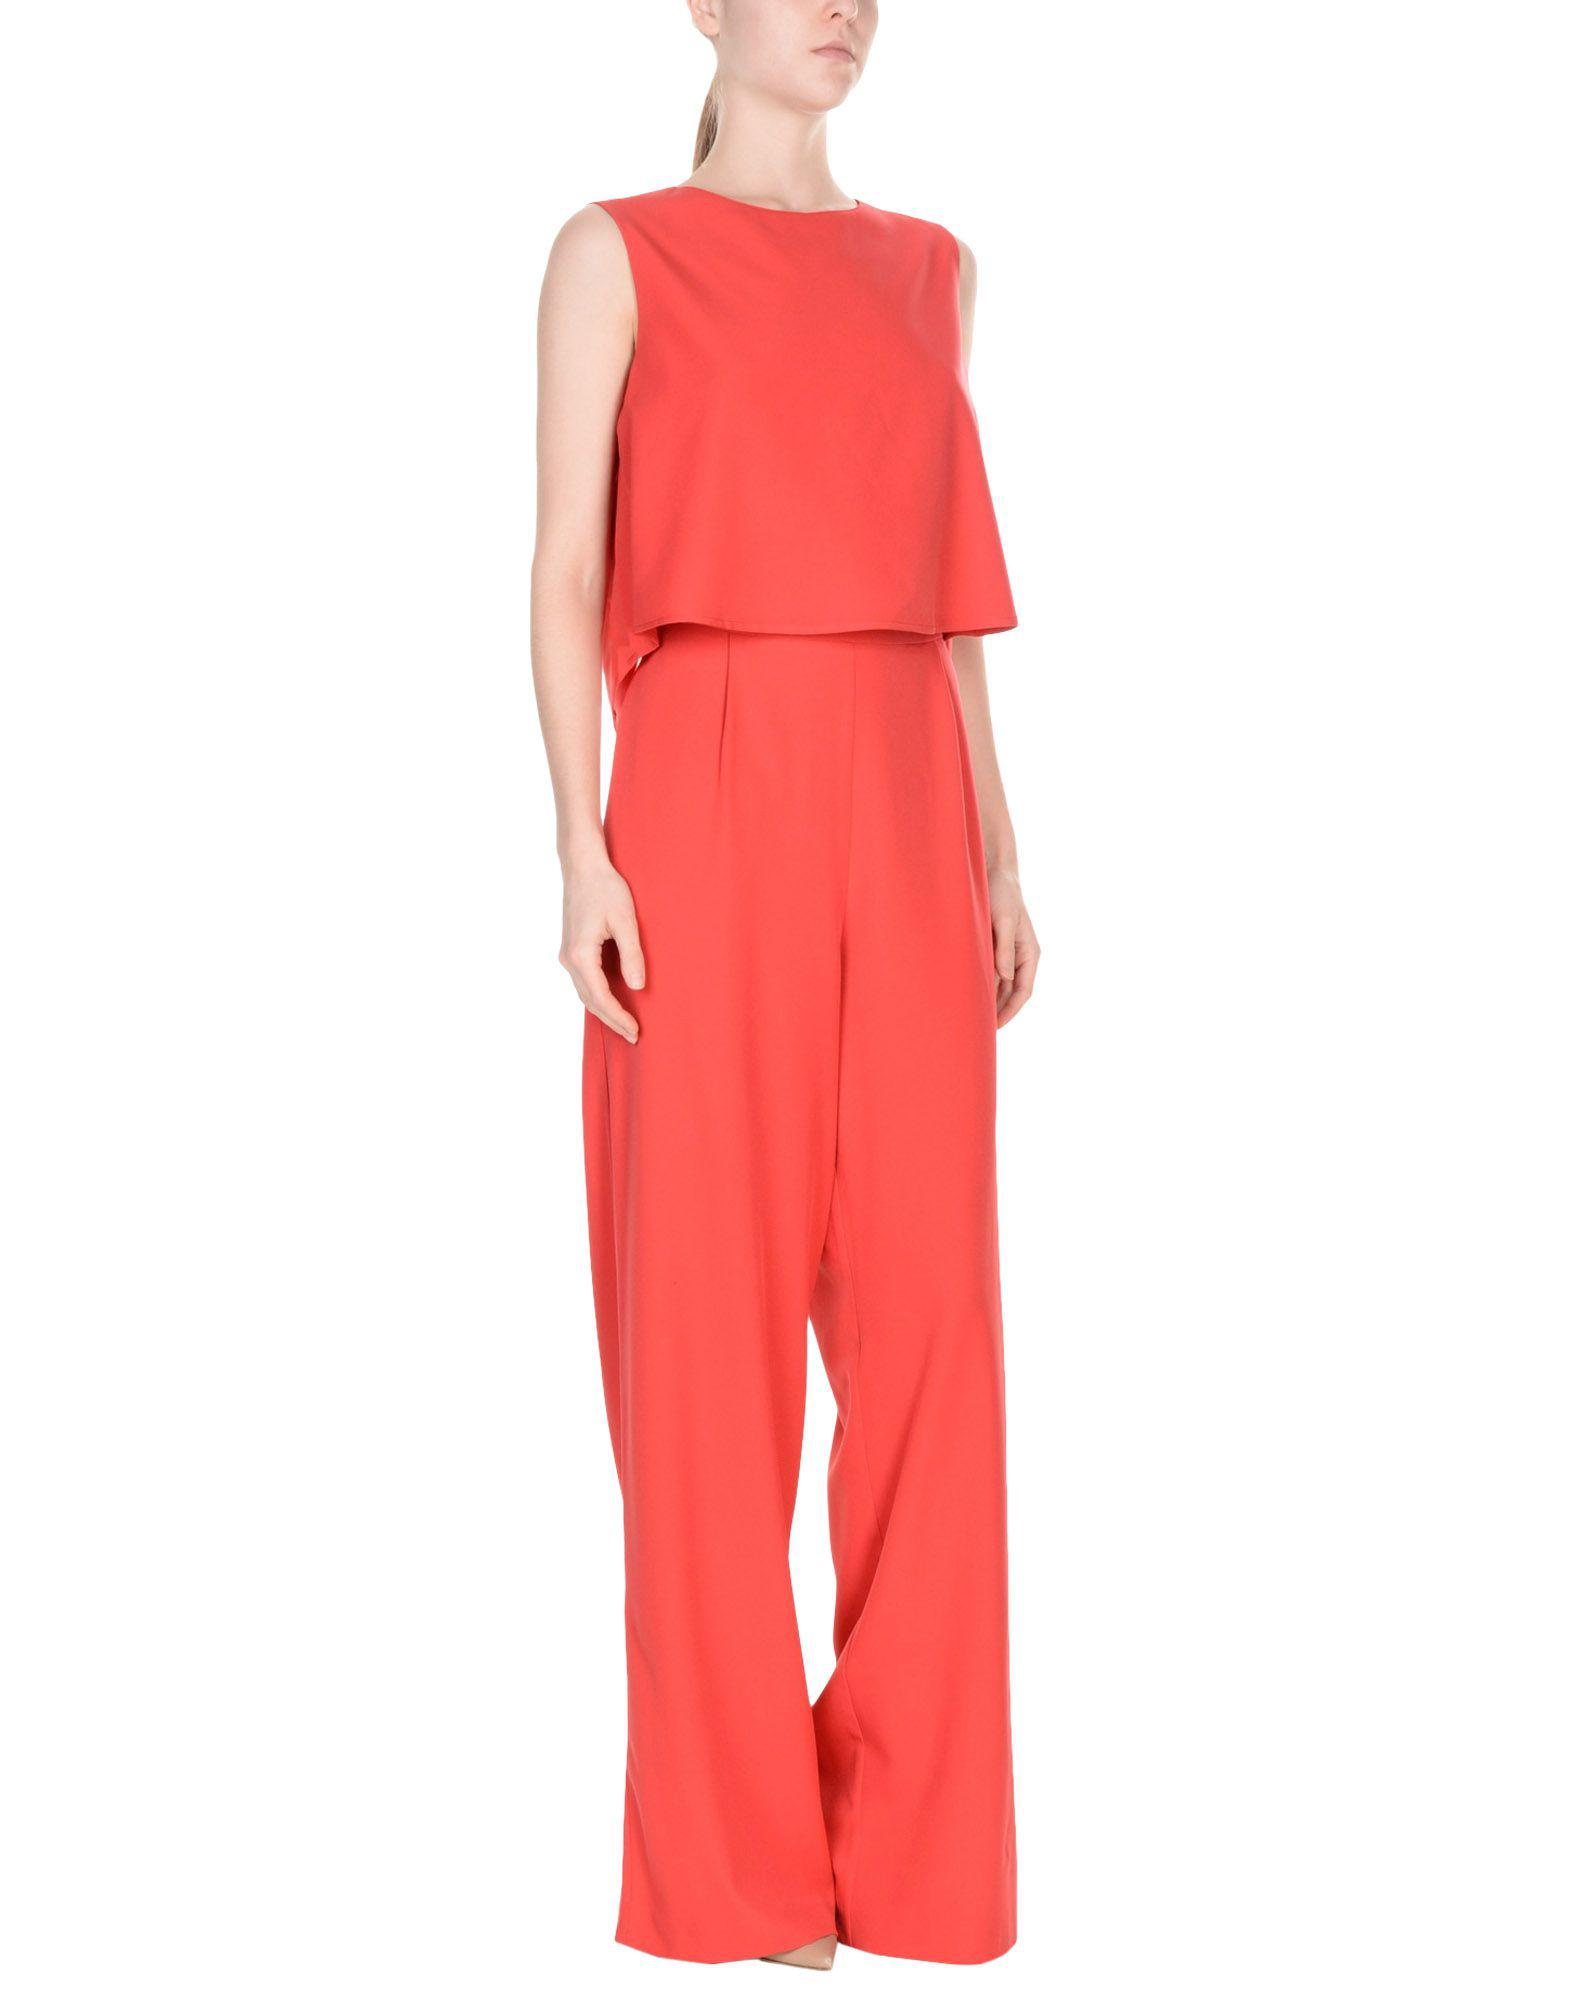 Buy Cheap Enjoy Cheap Cheap Online DUNGAREES - Jumpsuits Angelo Marani Clearance Shop For High Quality dKyJlPcapX